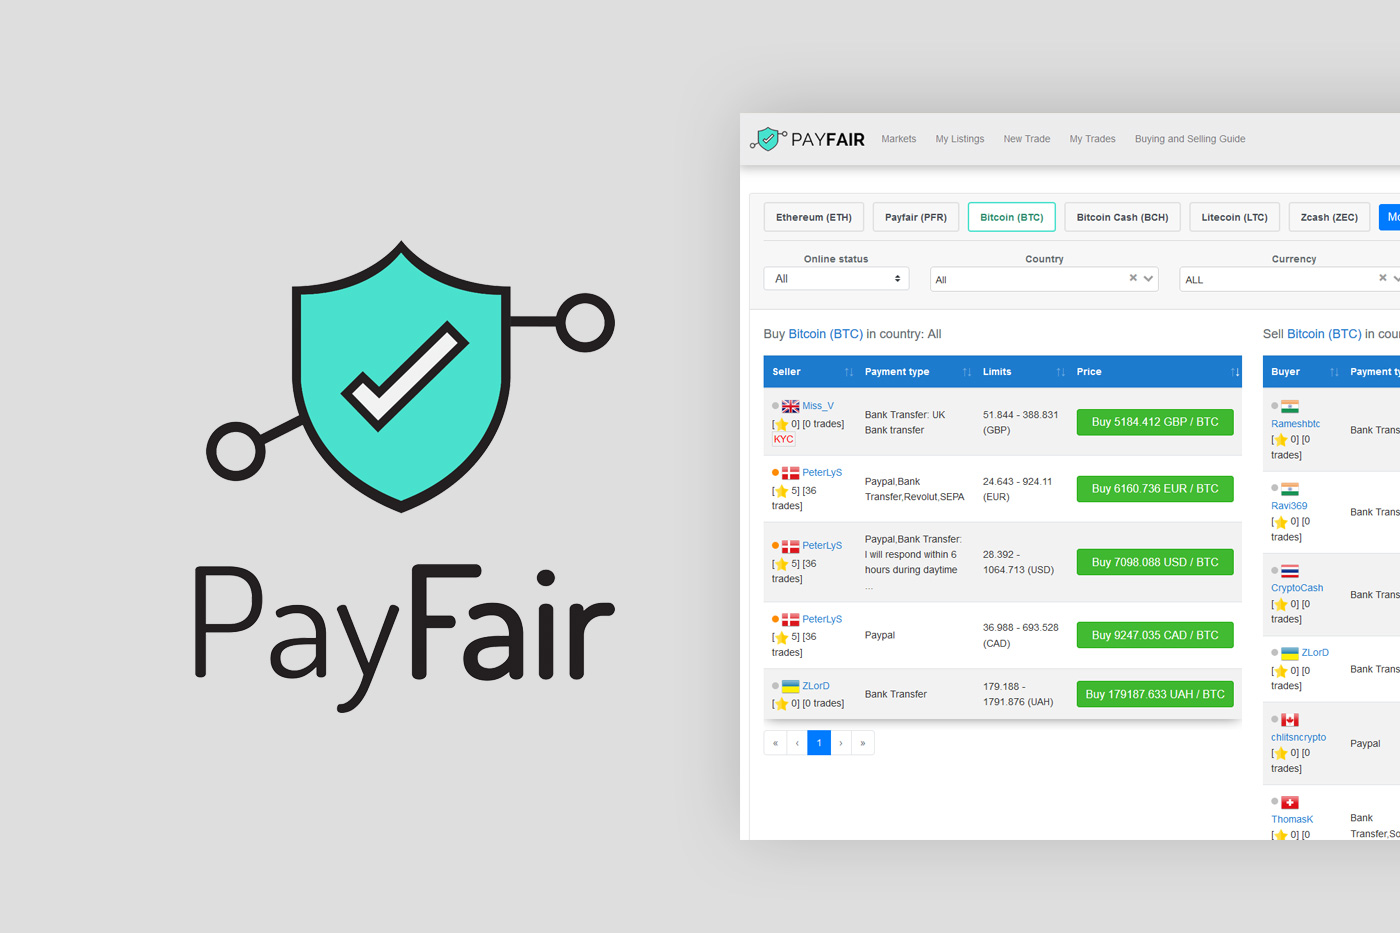 PatFair Review